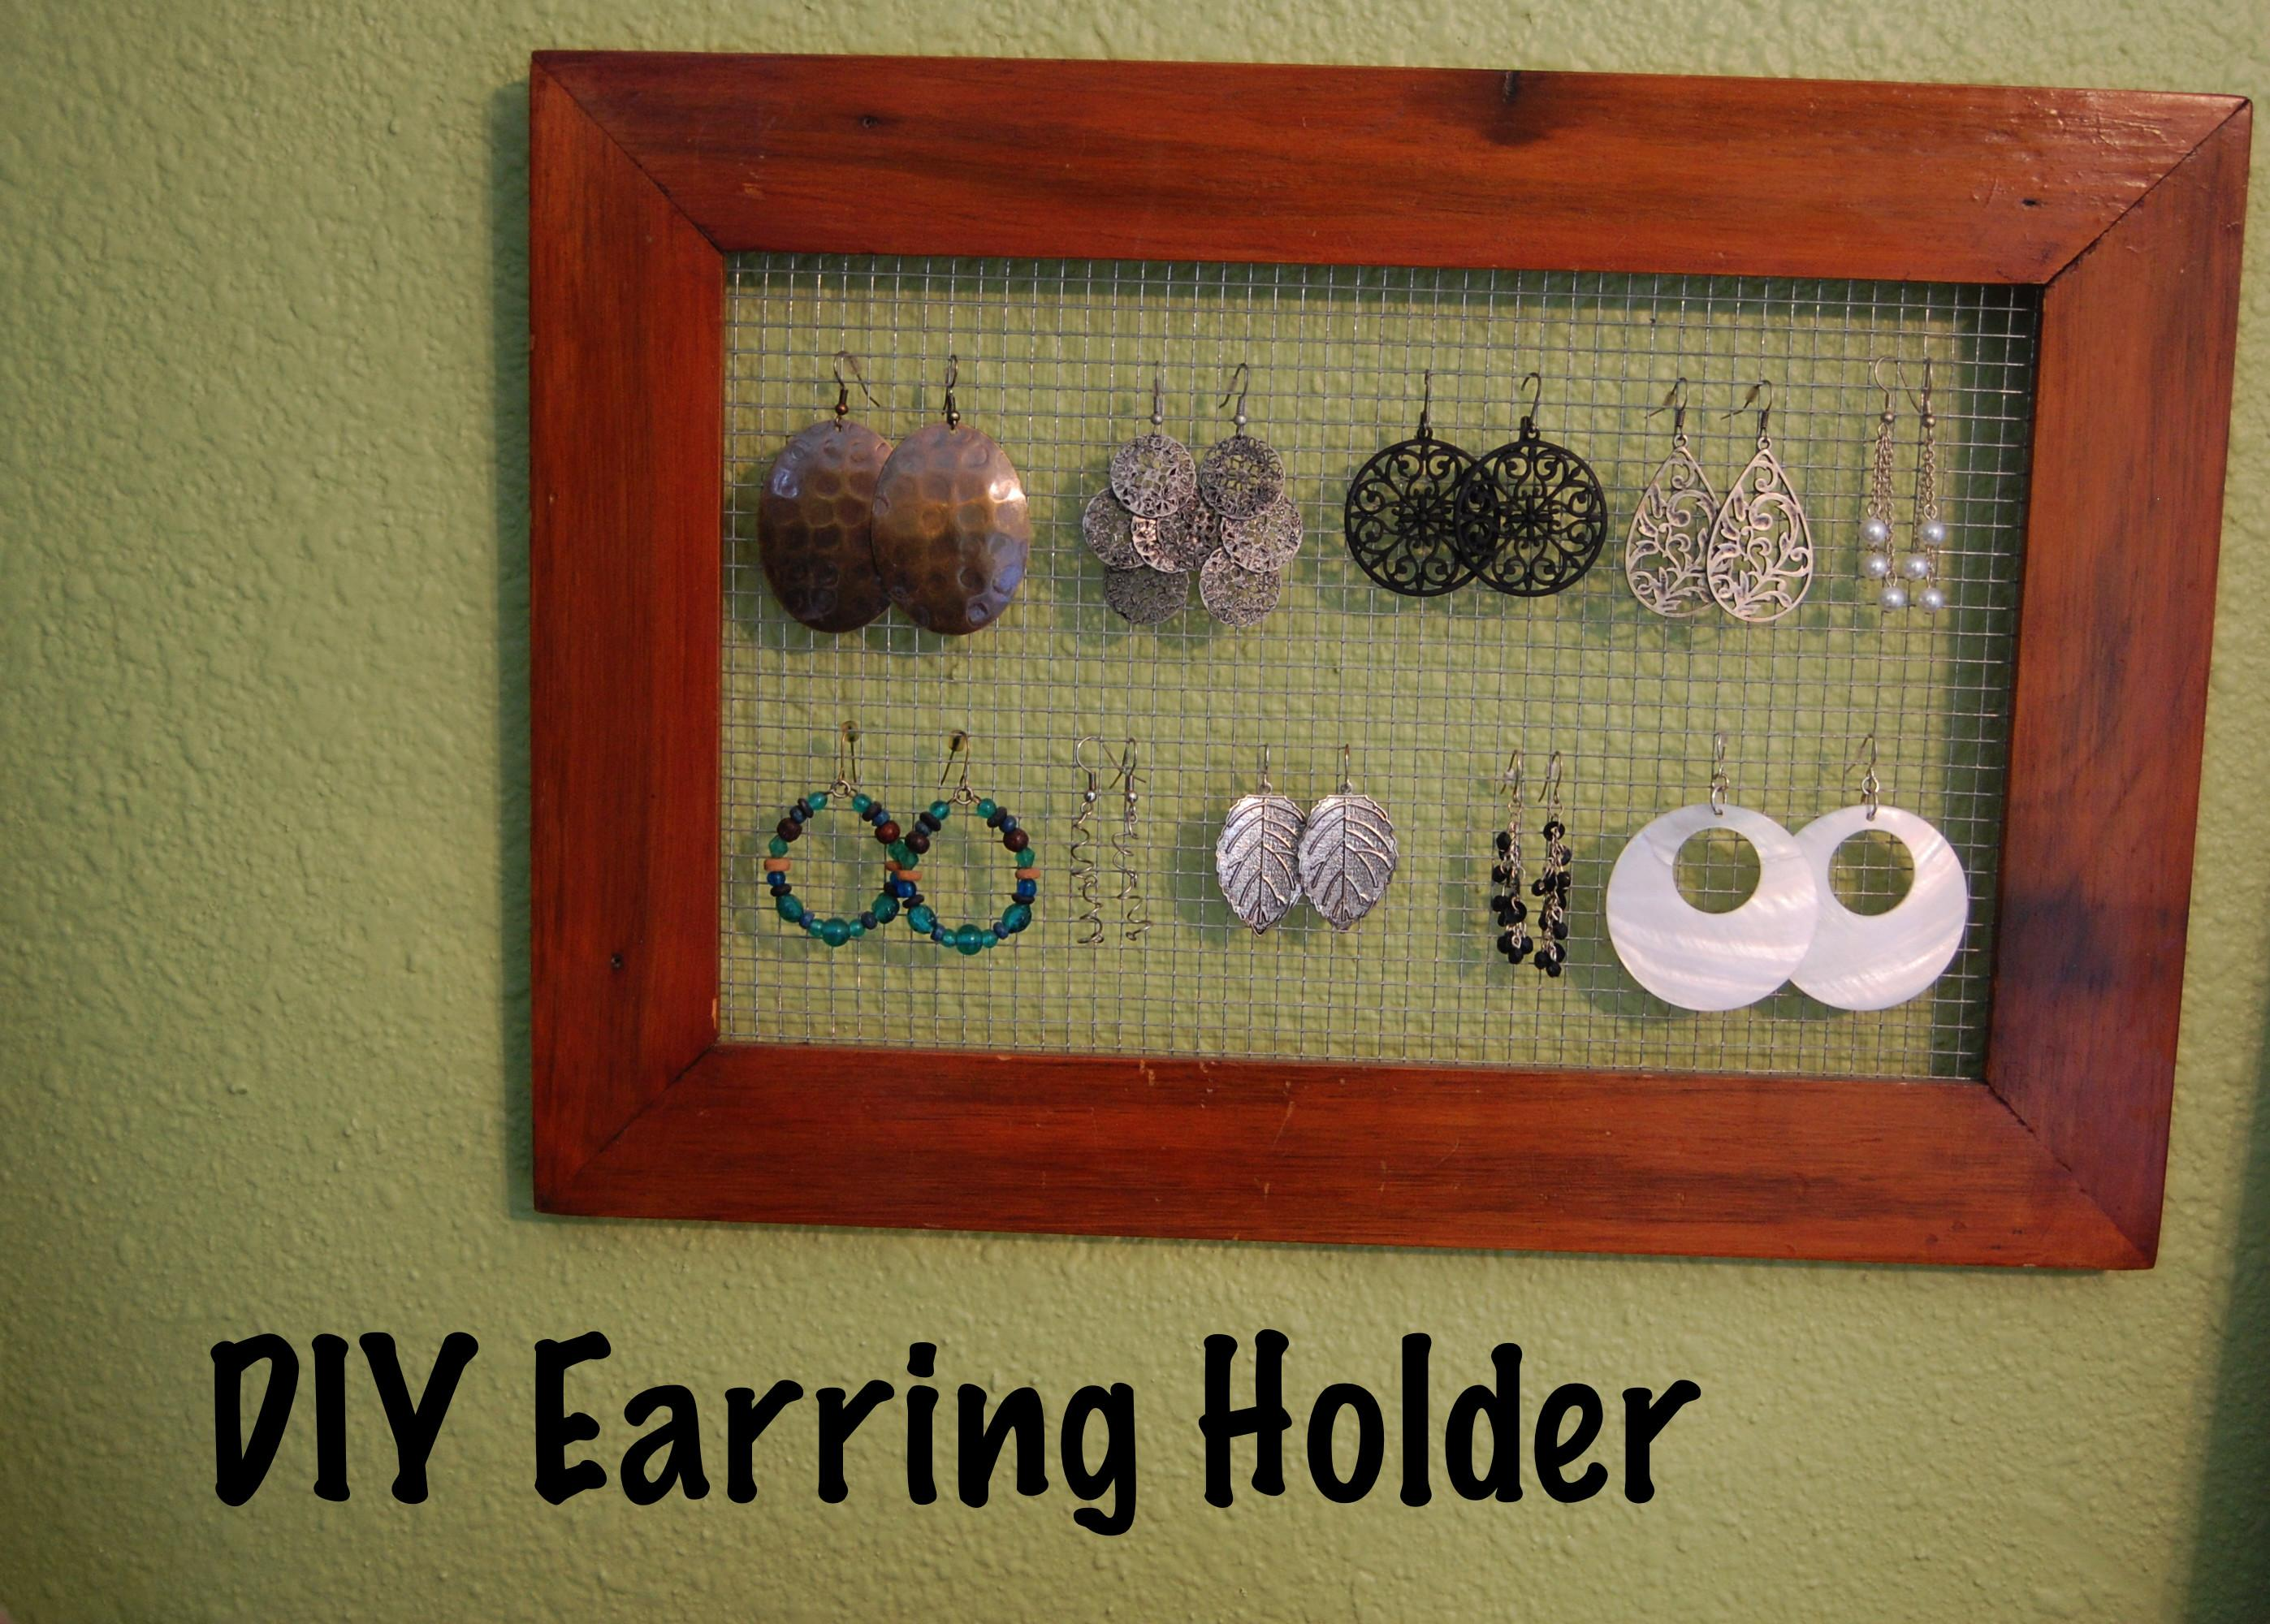 Diy Earring Holder Project Aholic